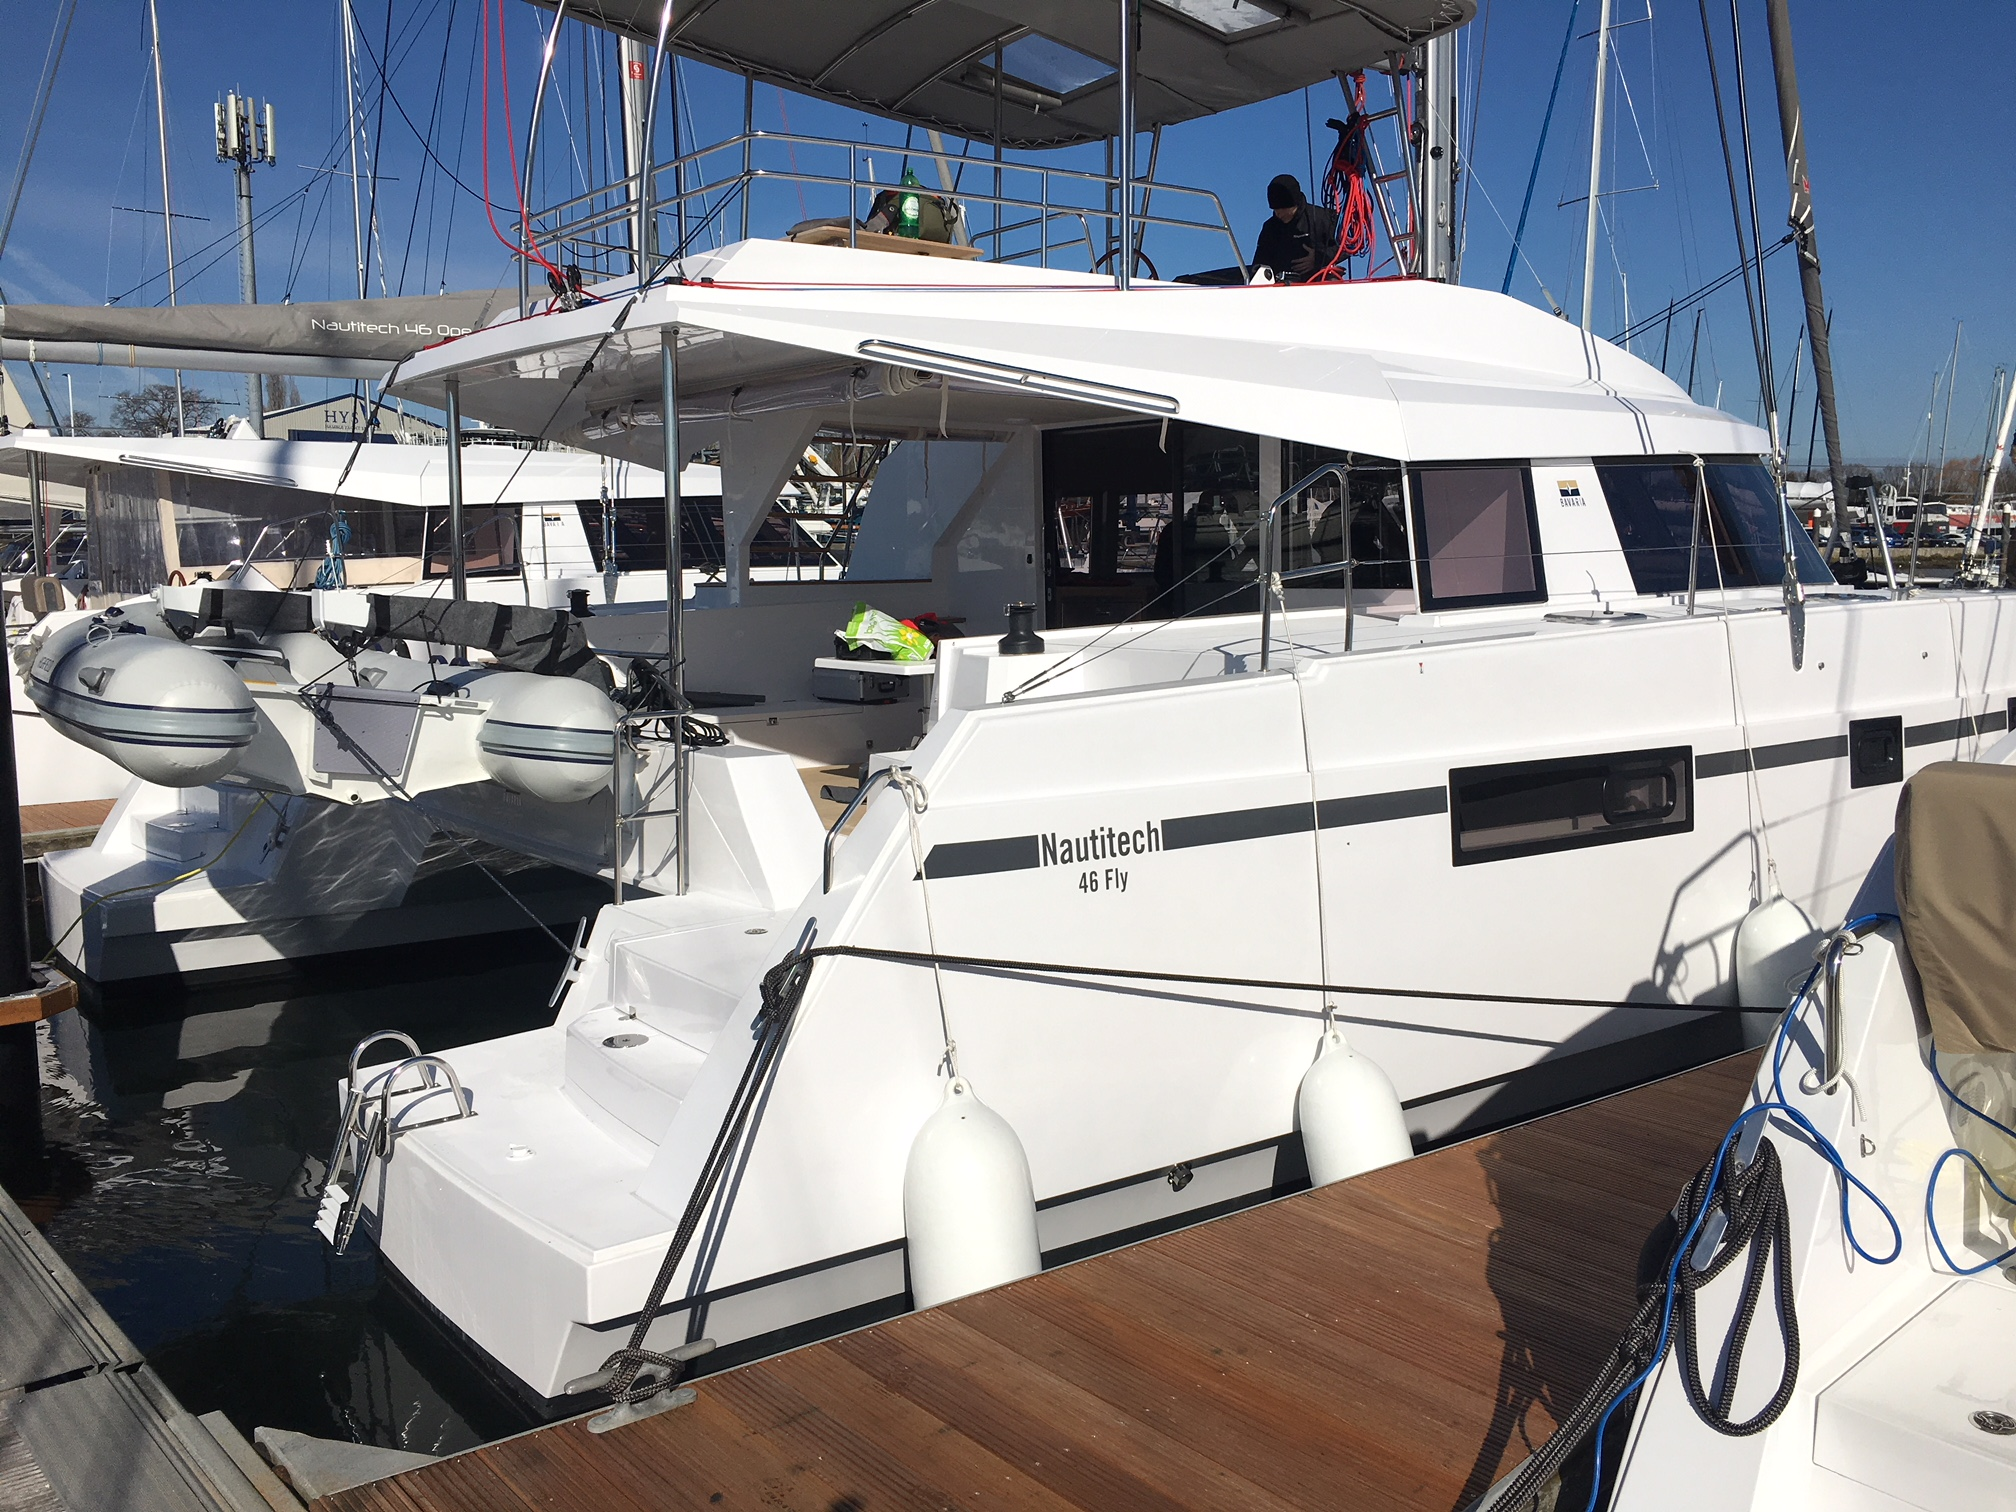 Nautitech 46 on delivery with Reliance Yacht Management